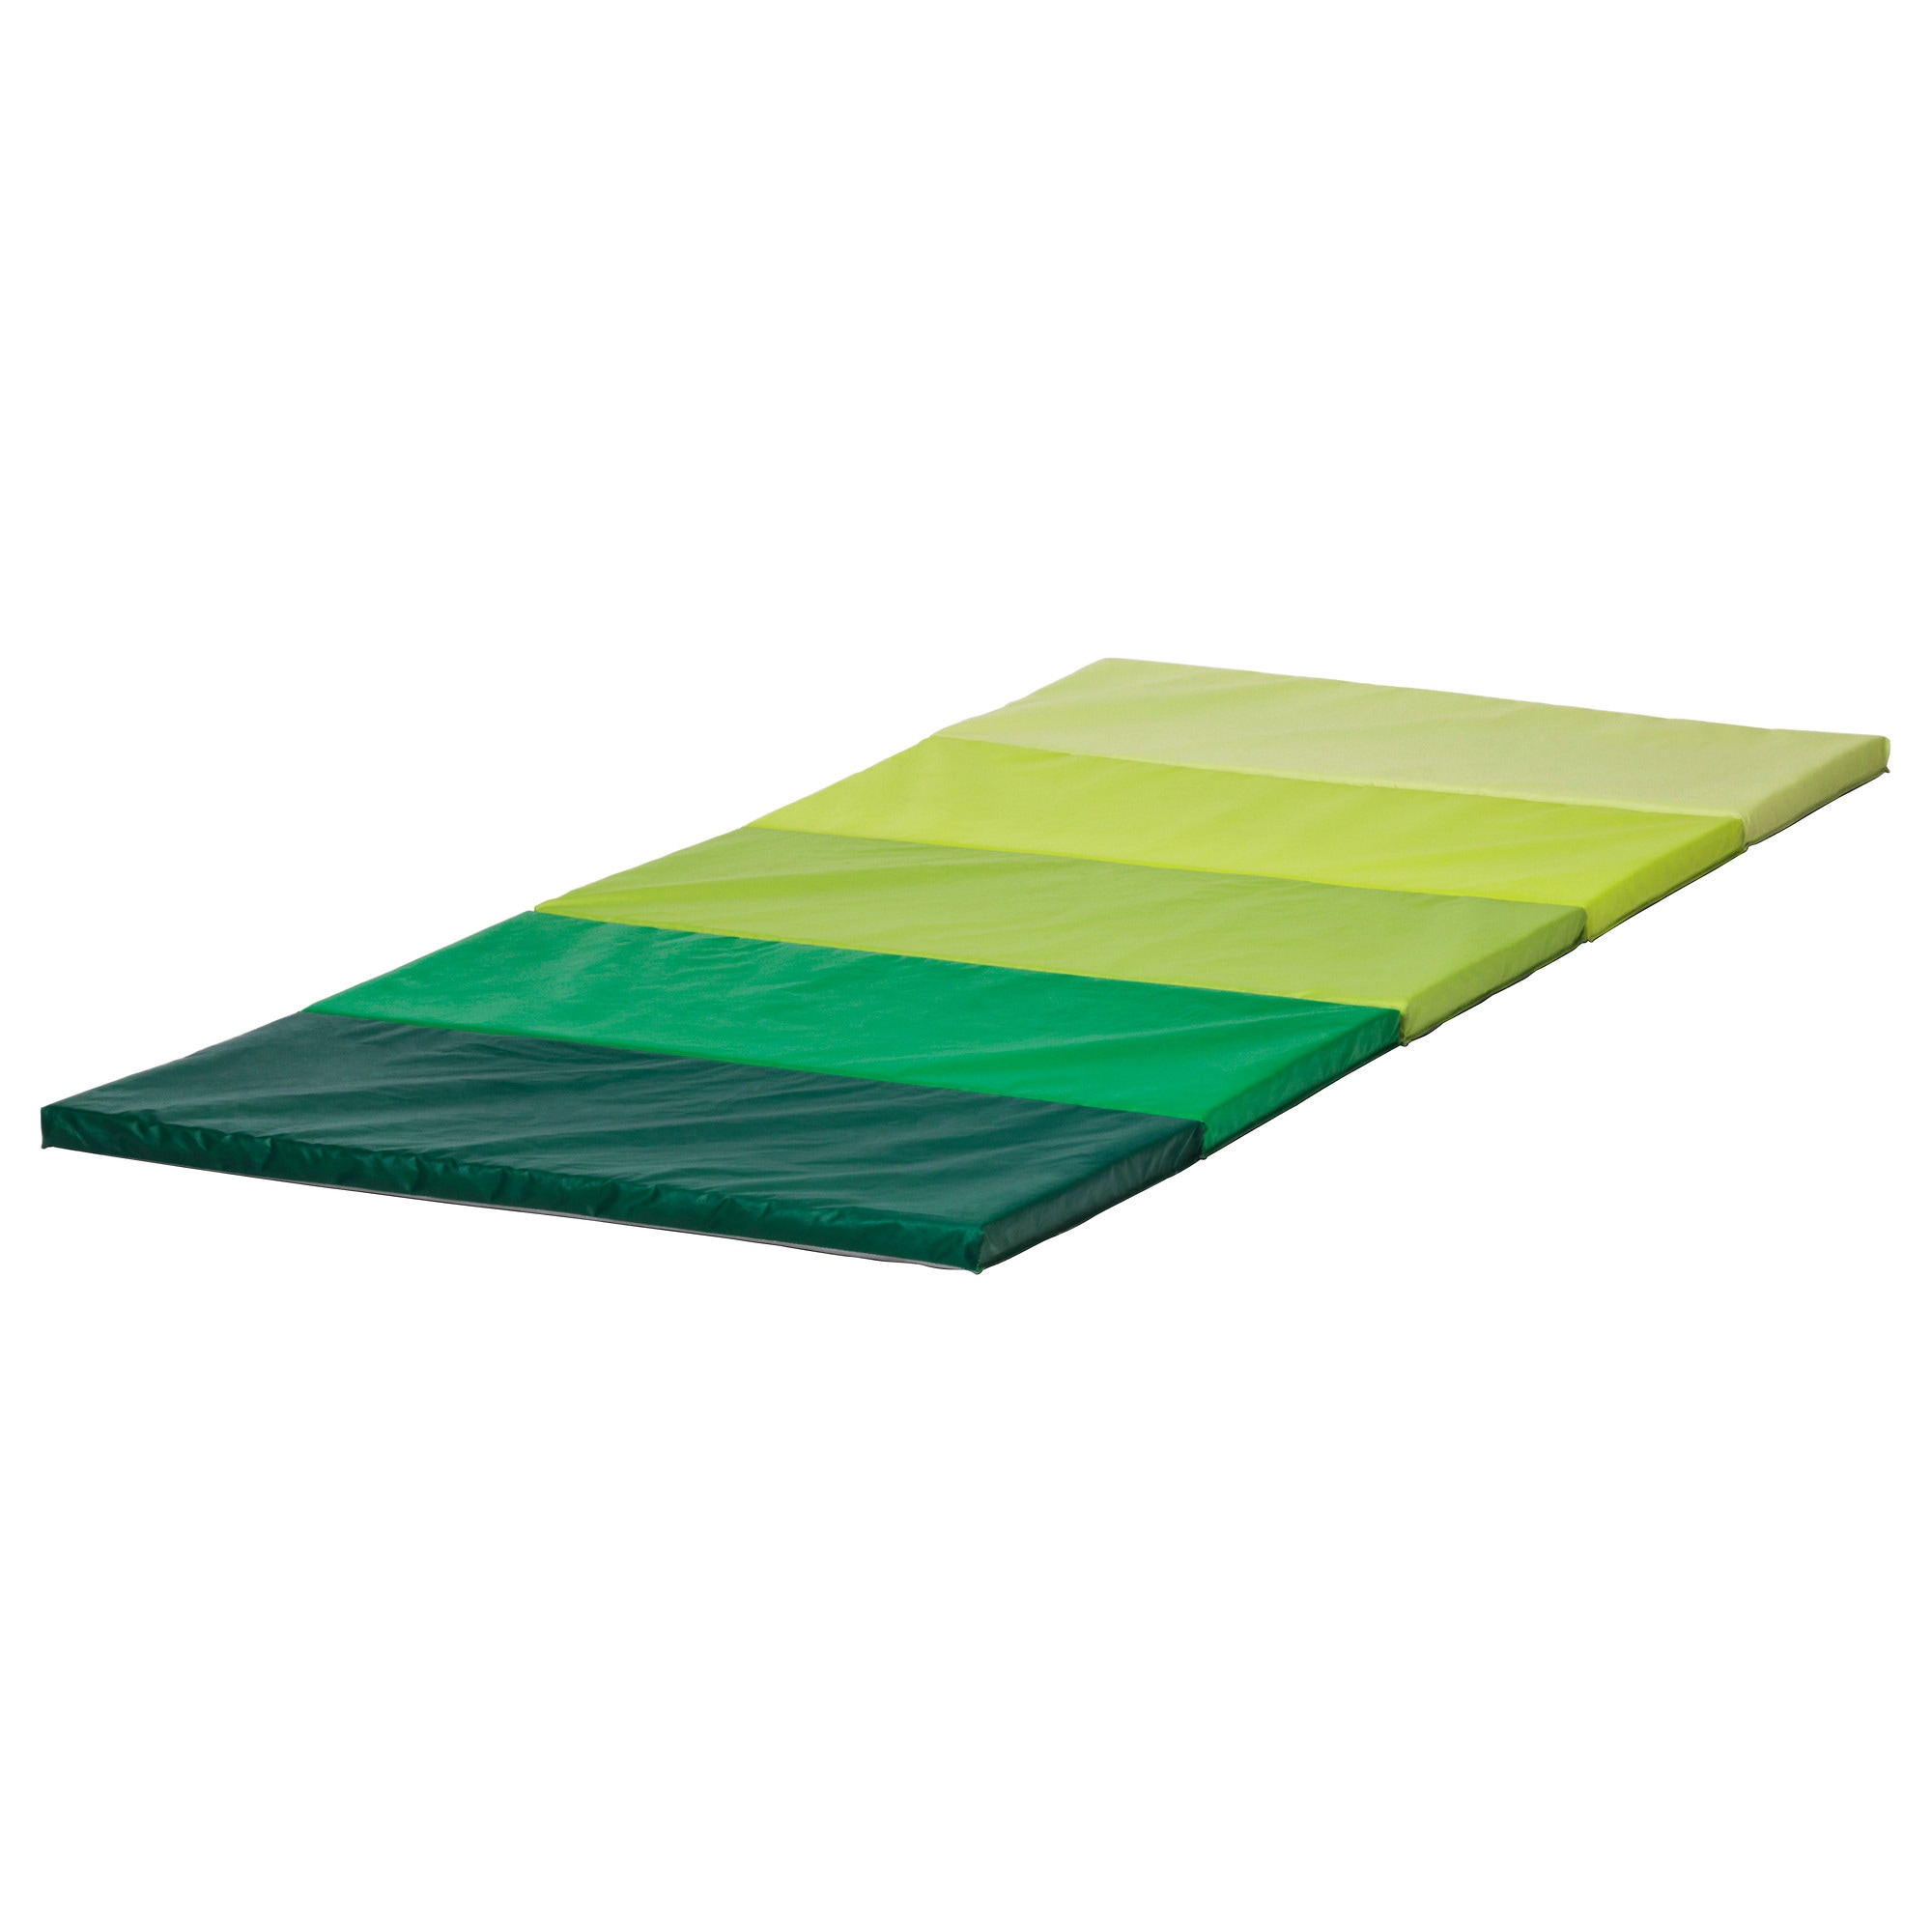 company davis for home page gymnastics equipment mat gymnastic fat mats athletic